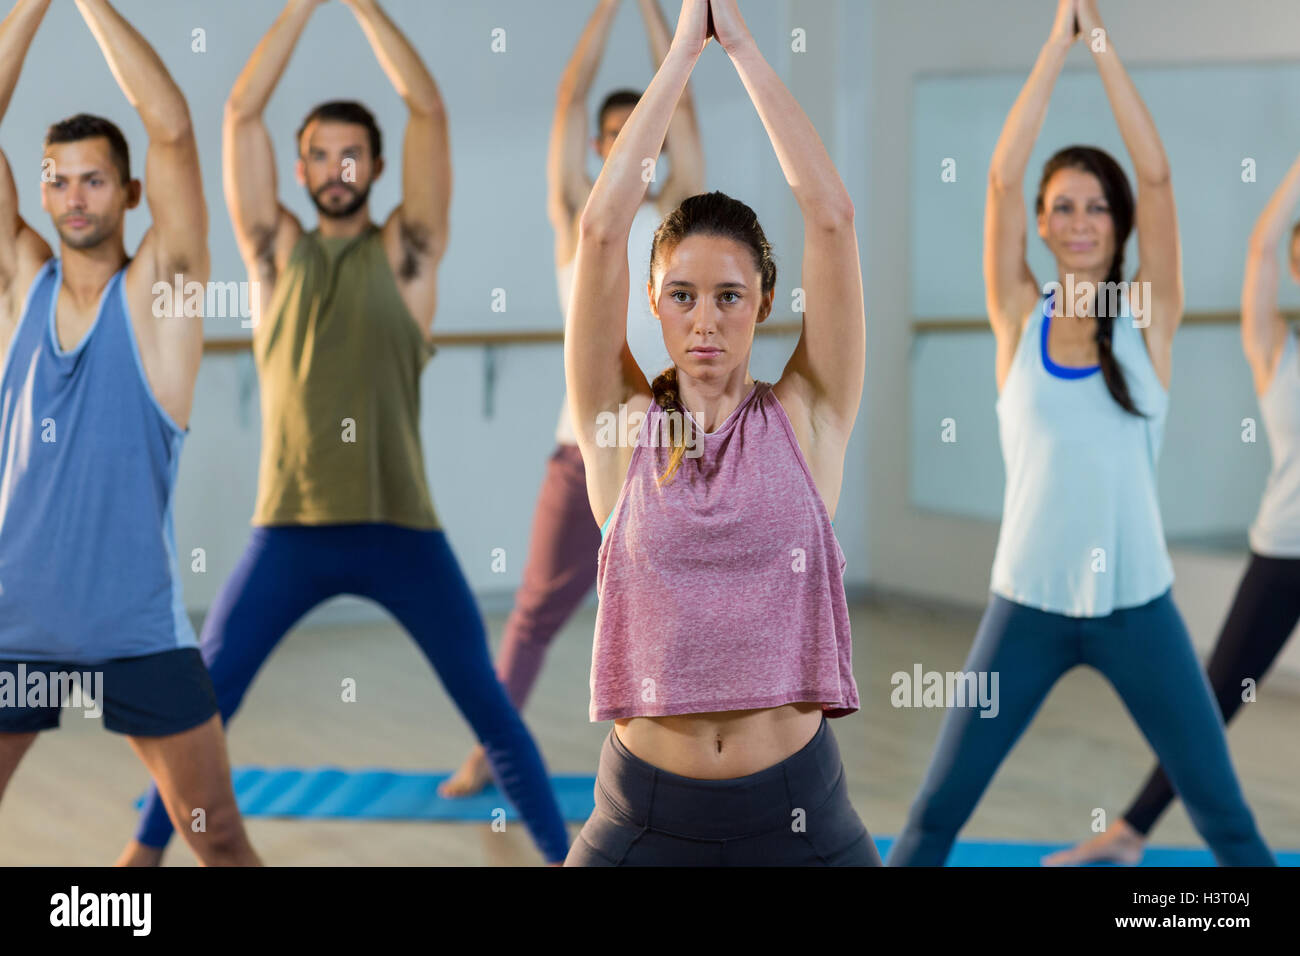 En prenant de l'instructeur de yoga Photo Stock